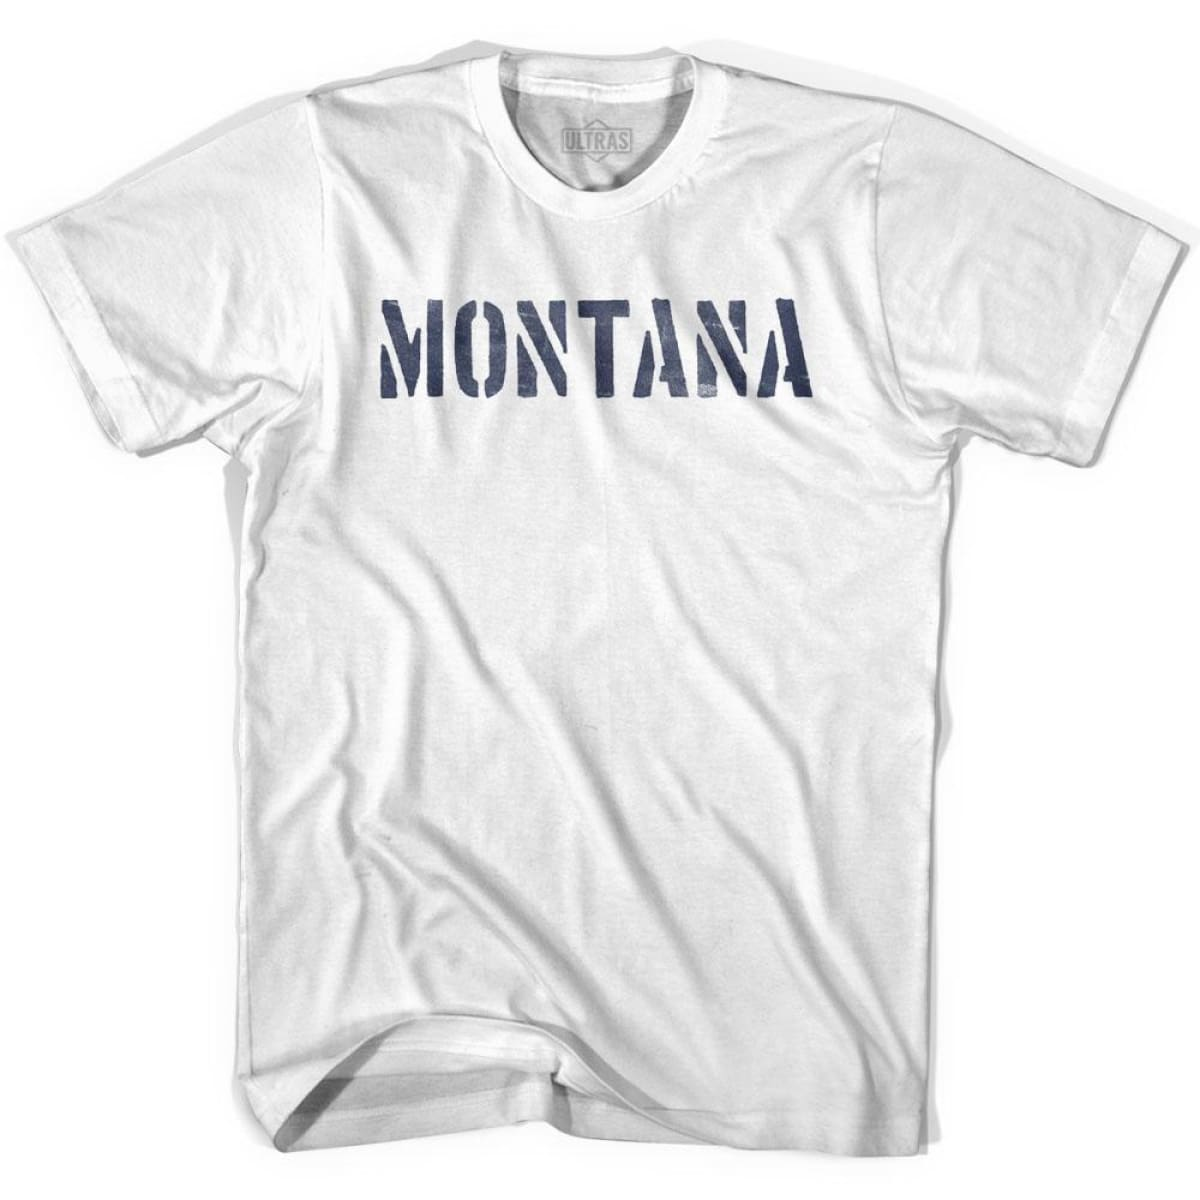 Montana State Stencil Adult Cotton T-shirt - White / Adult Small - Stencil State